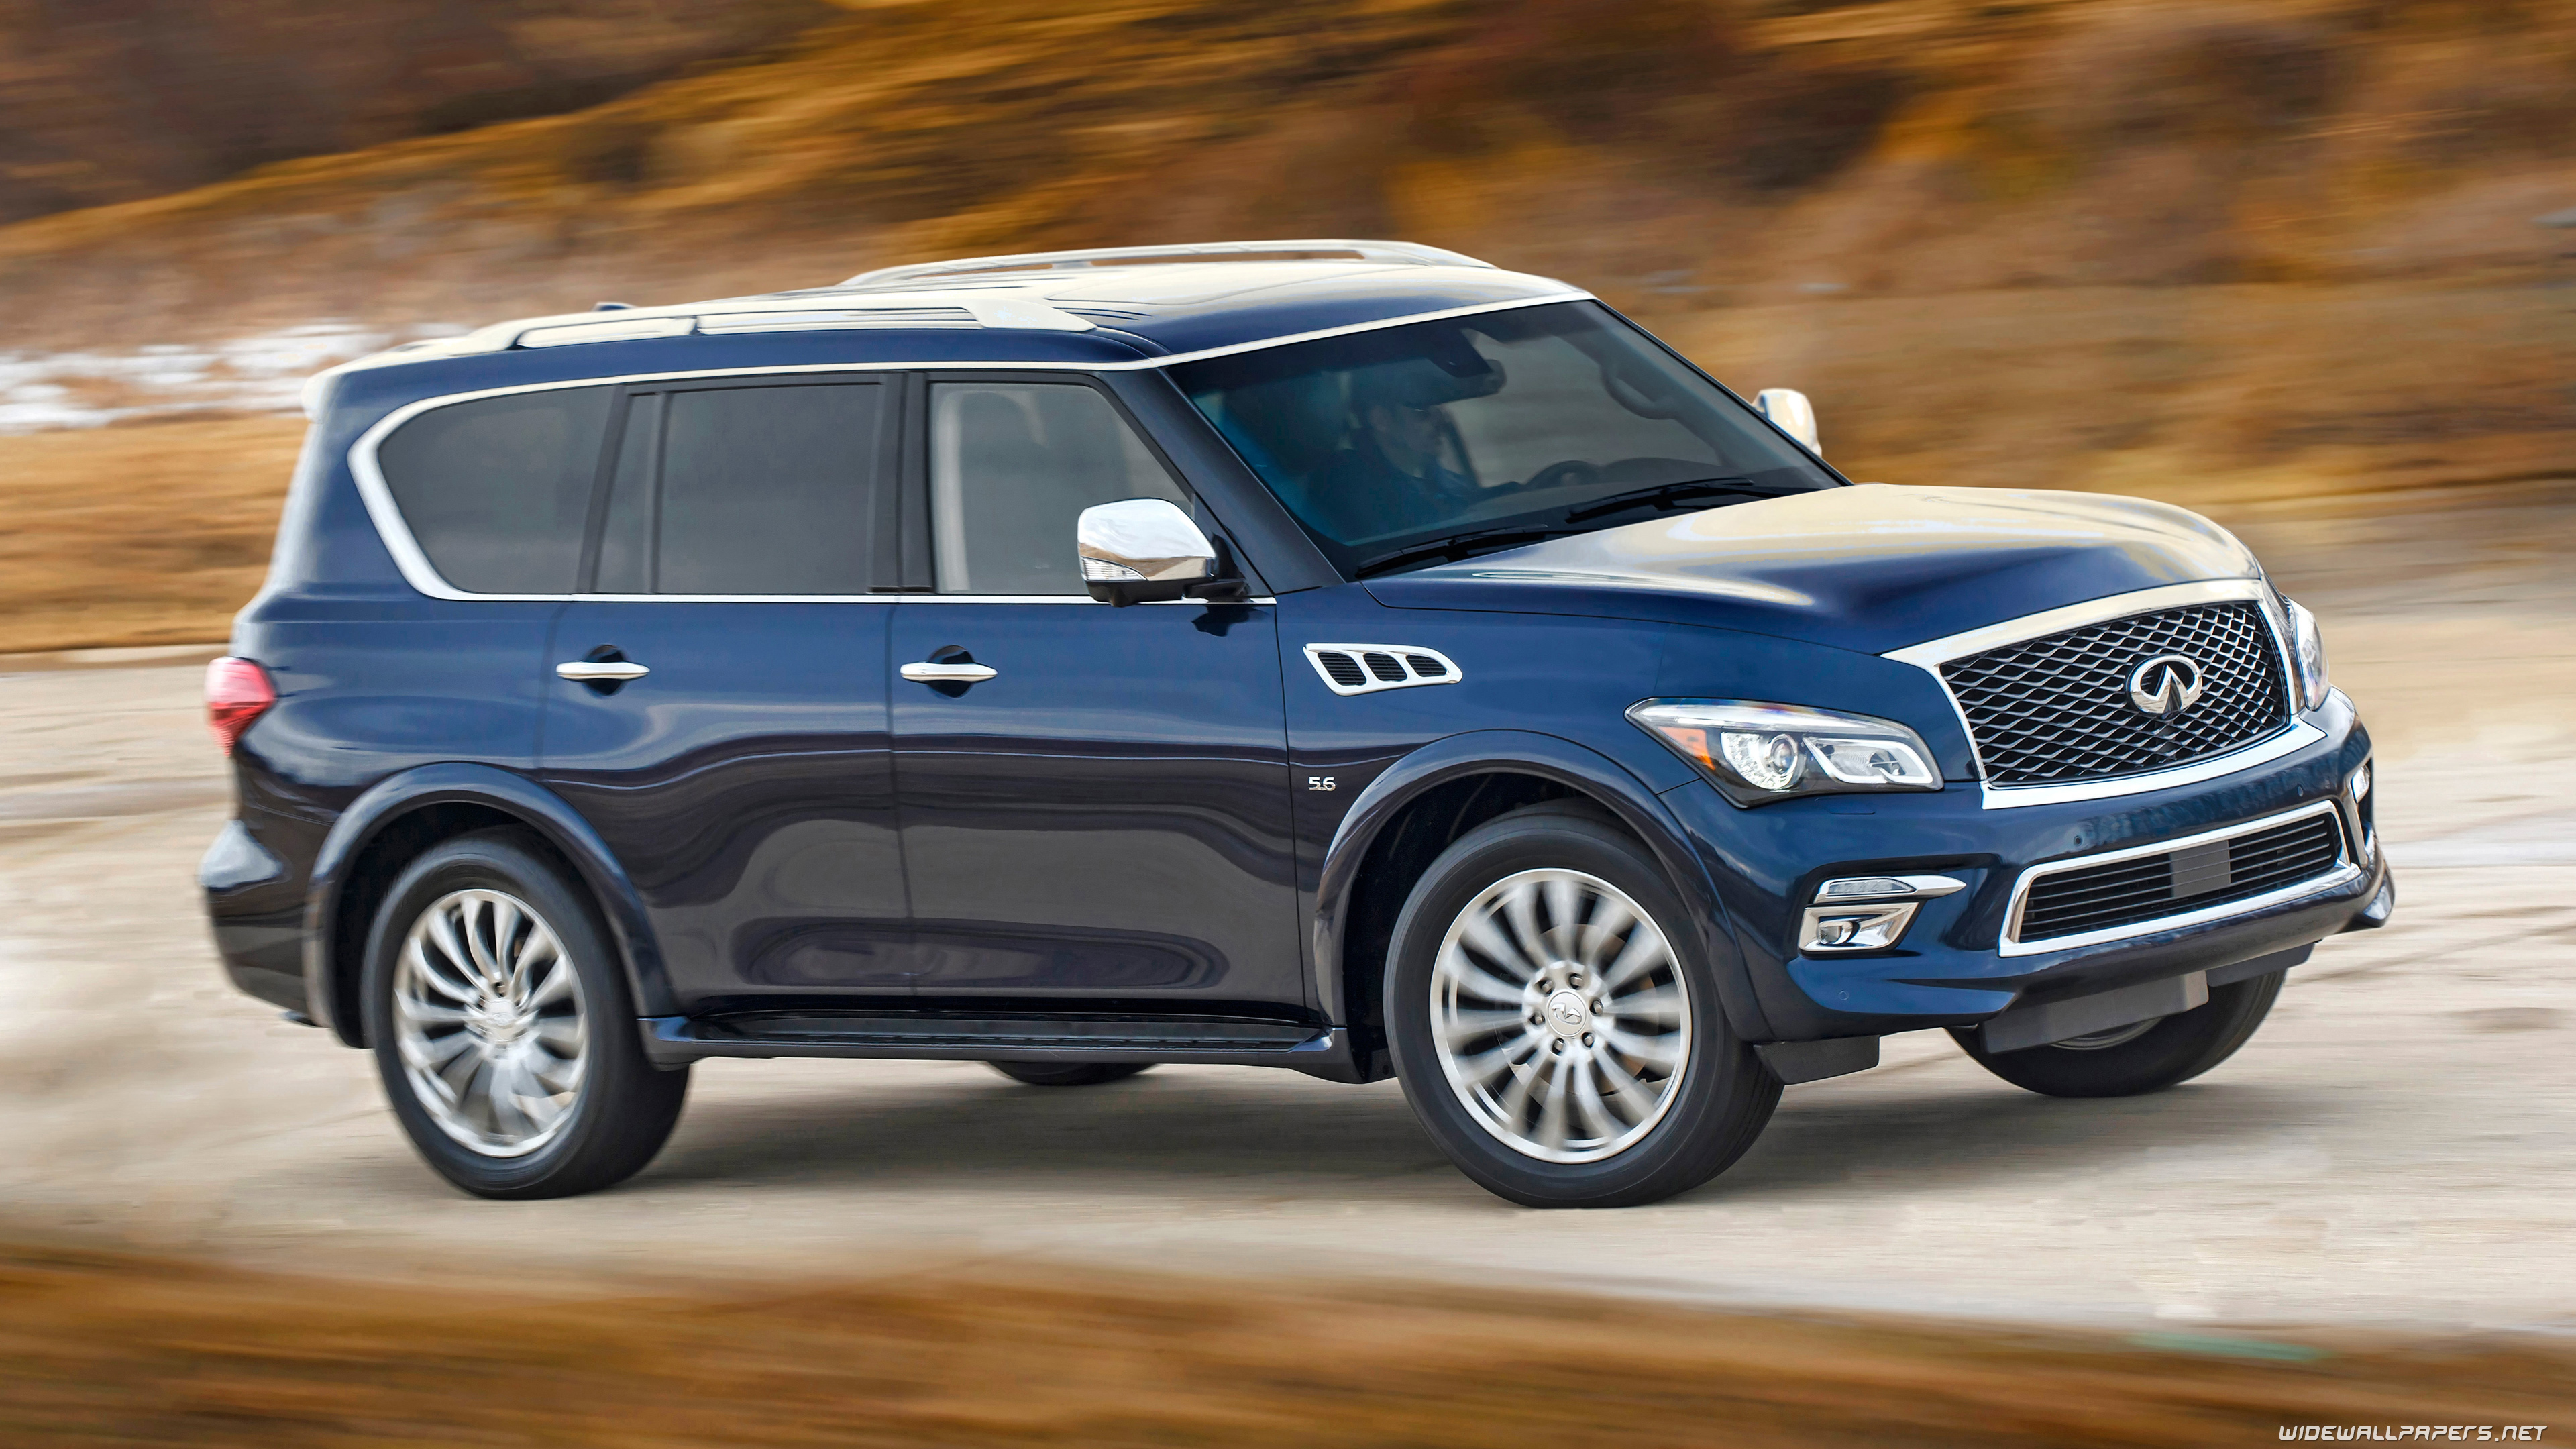 3840x2160 - Infiniti QX80 Wallpapers 18